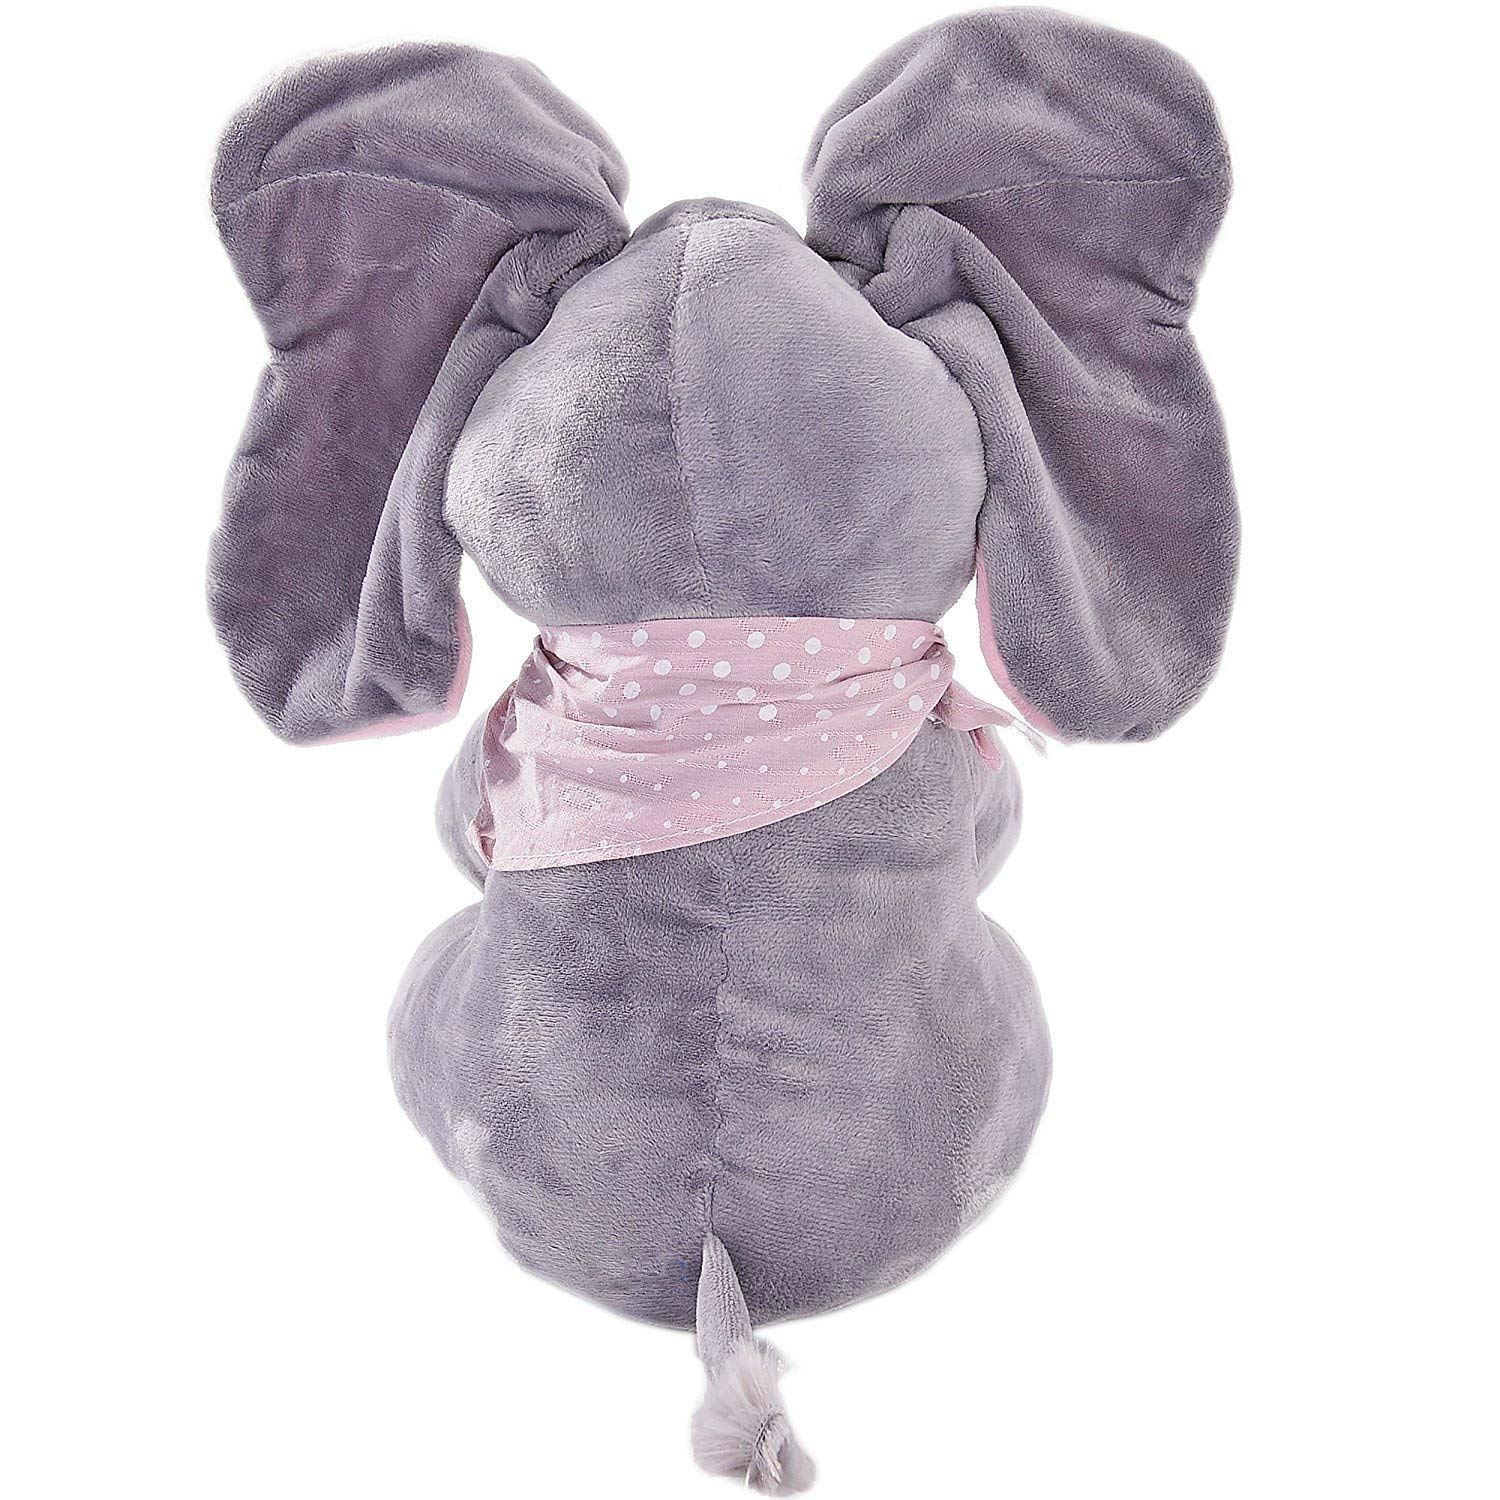 MLSH Floppy The Peek A Boo Elephant,Interactive Plush Toy Stuffed Animal Doll for Infants, Sings & Plays Gift for Baby Showers, Toddler Birthdays, Christmas Toys for Baby Birthday Gift Adjust Volume by MLSH